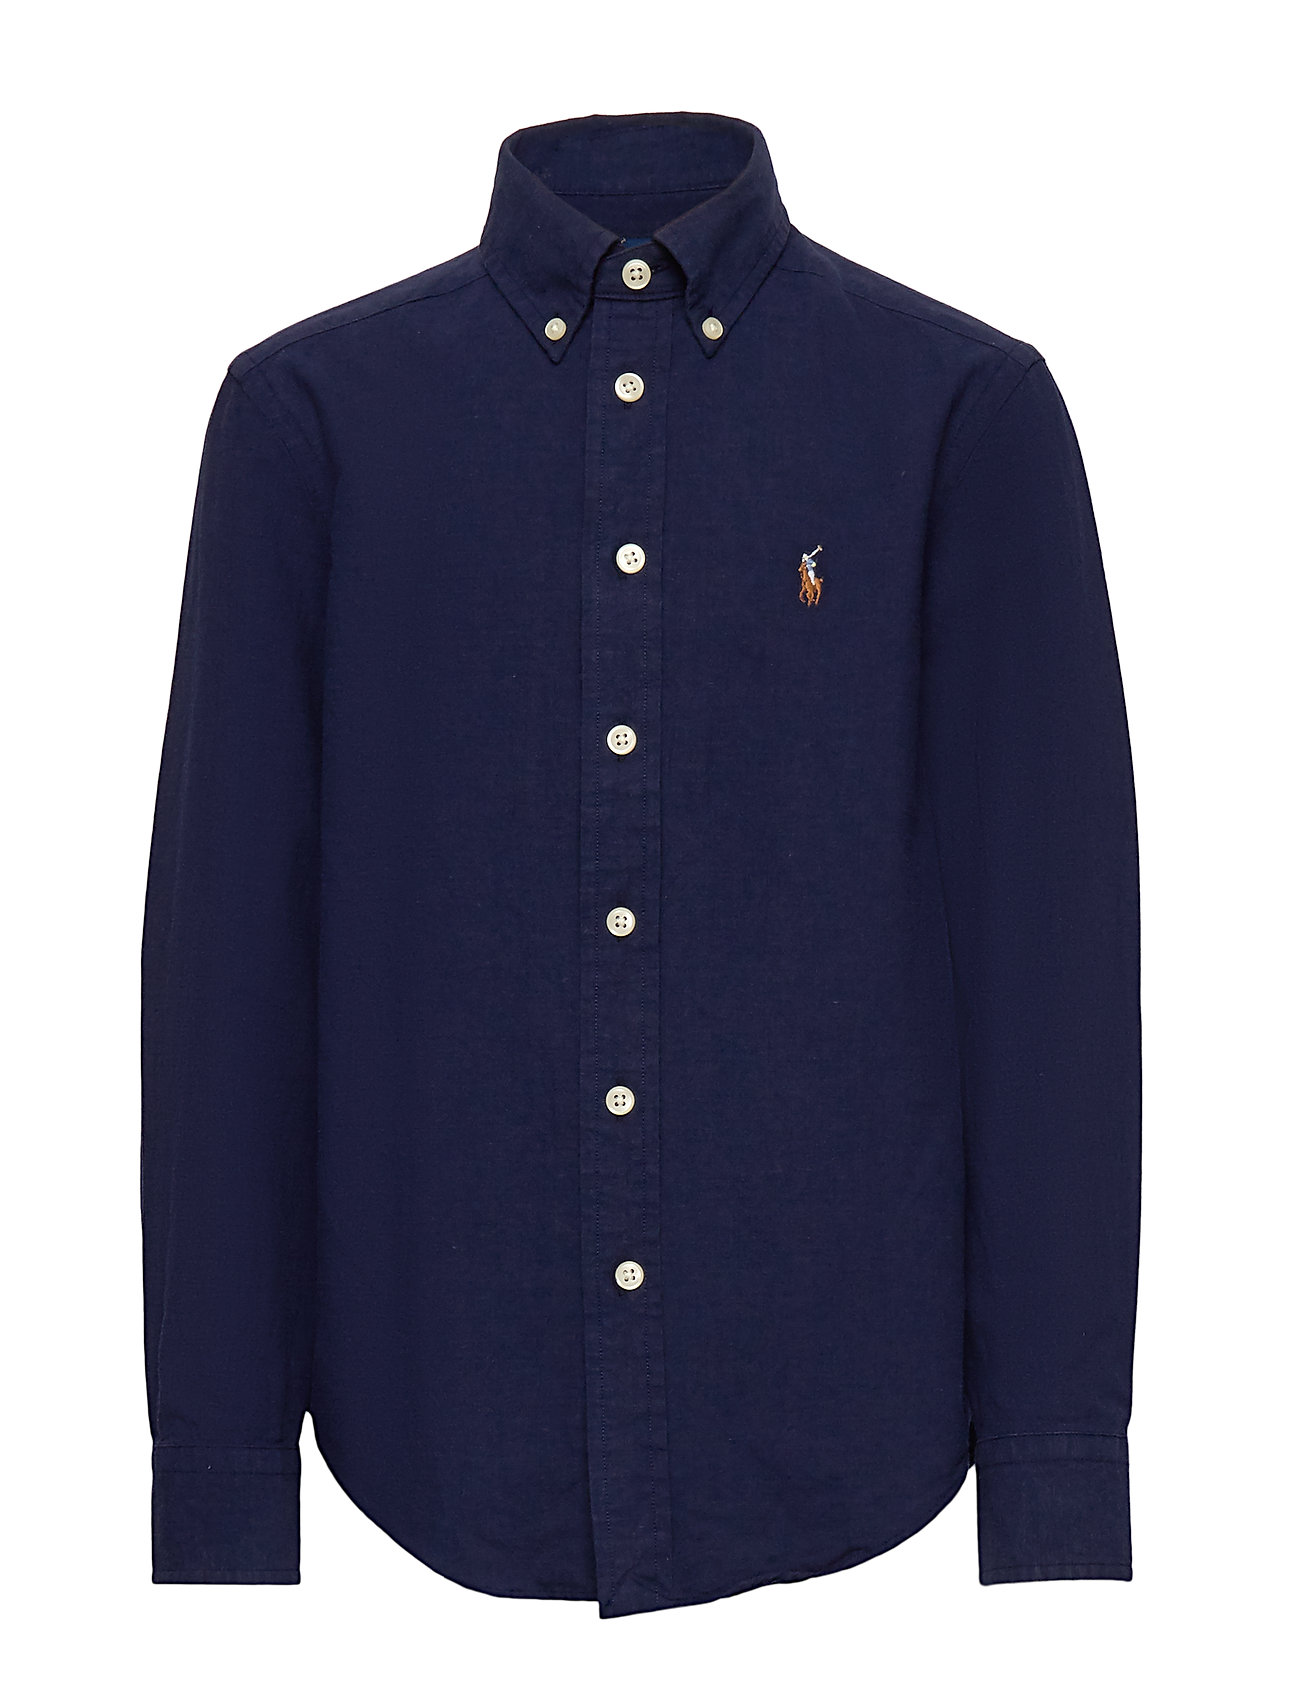 Ralph Lauren Kids Cotton-Blend Shirt - NEWPORT NAVY